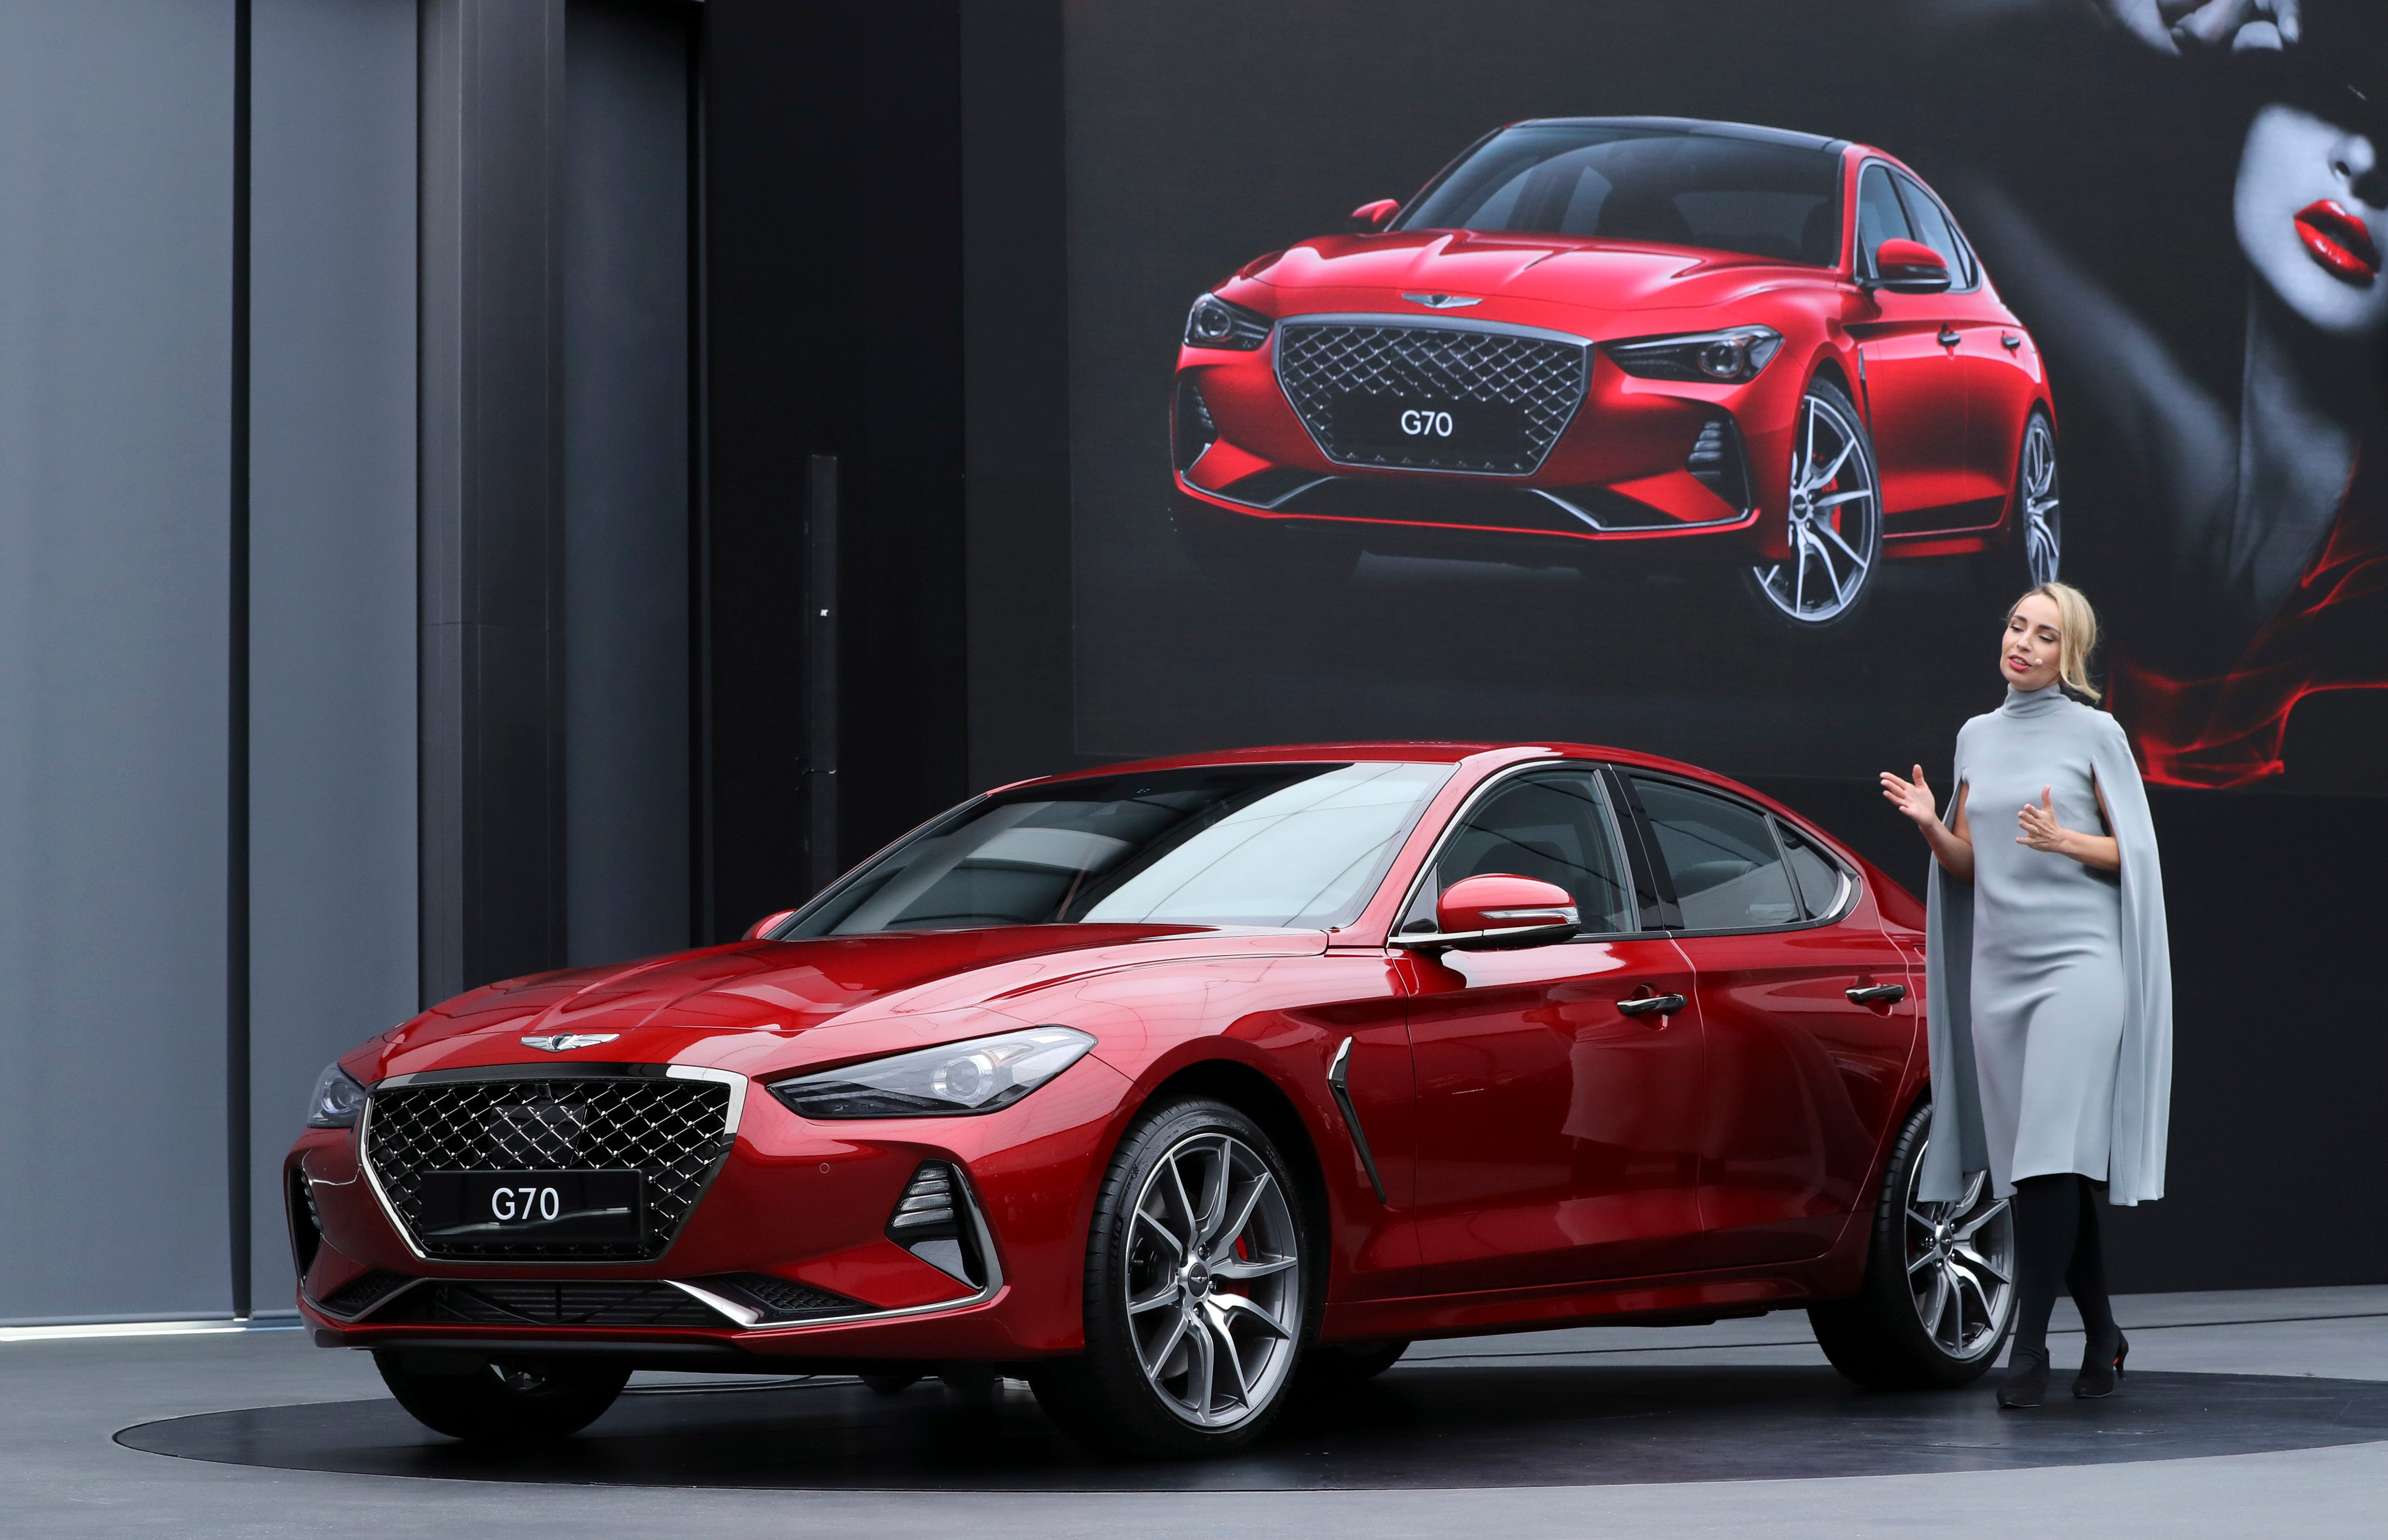 Bozhena Lalova, A Head Of Genesis Color And Trim Of Hyundai Motor Co.,  Speaks To The Media Next To A New Sedan Genesis G70 During Its Unveiling  Ceremony In ...